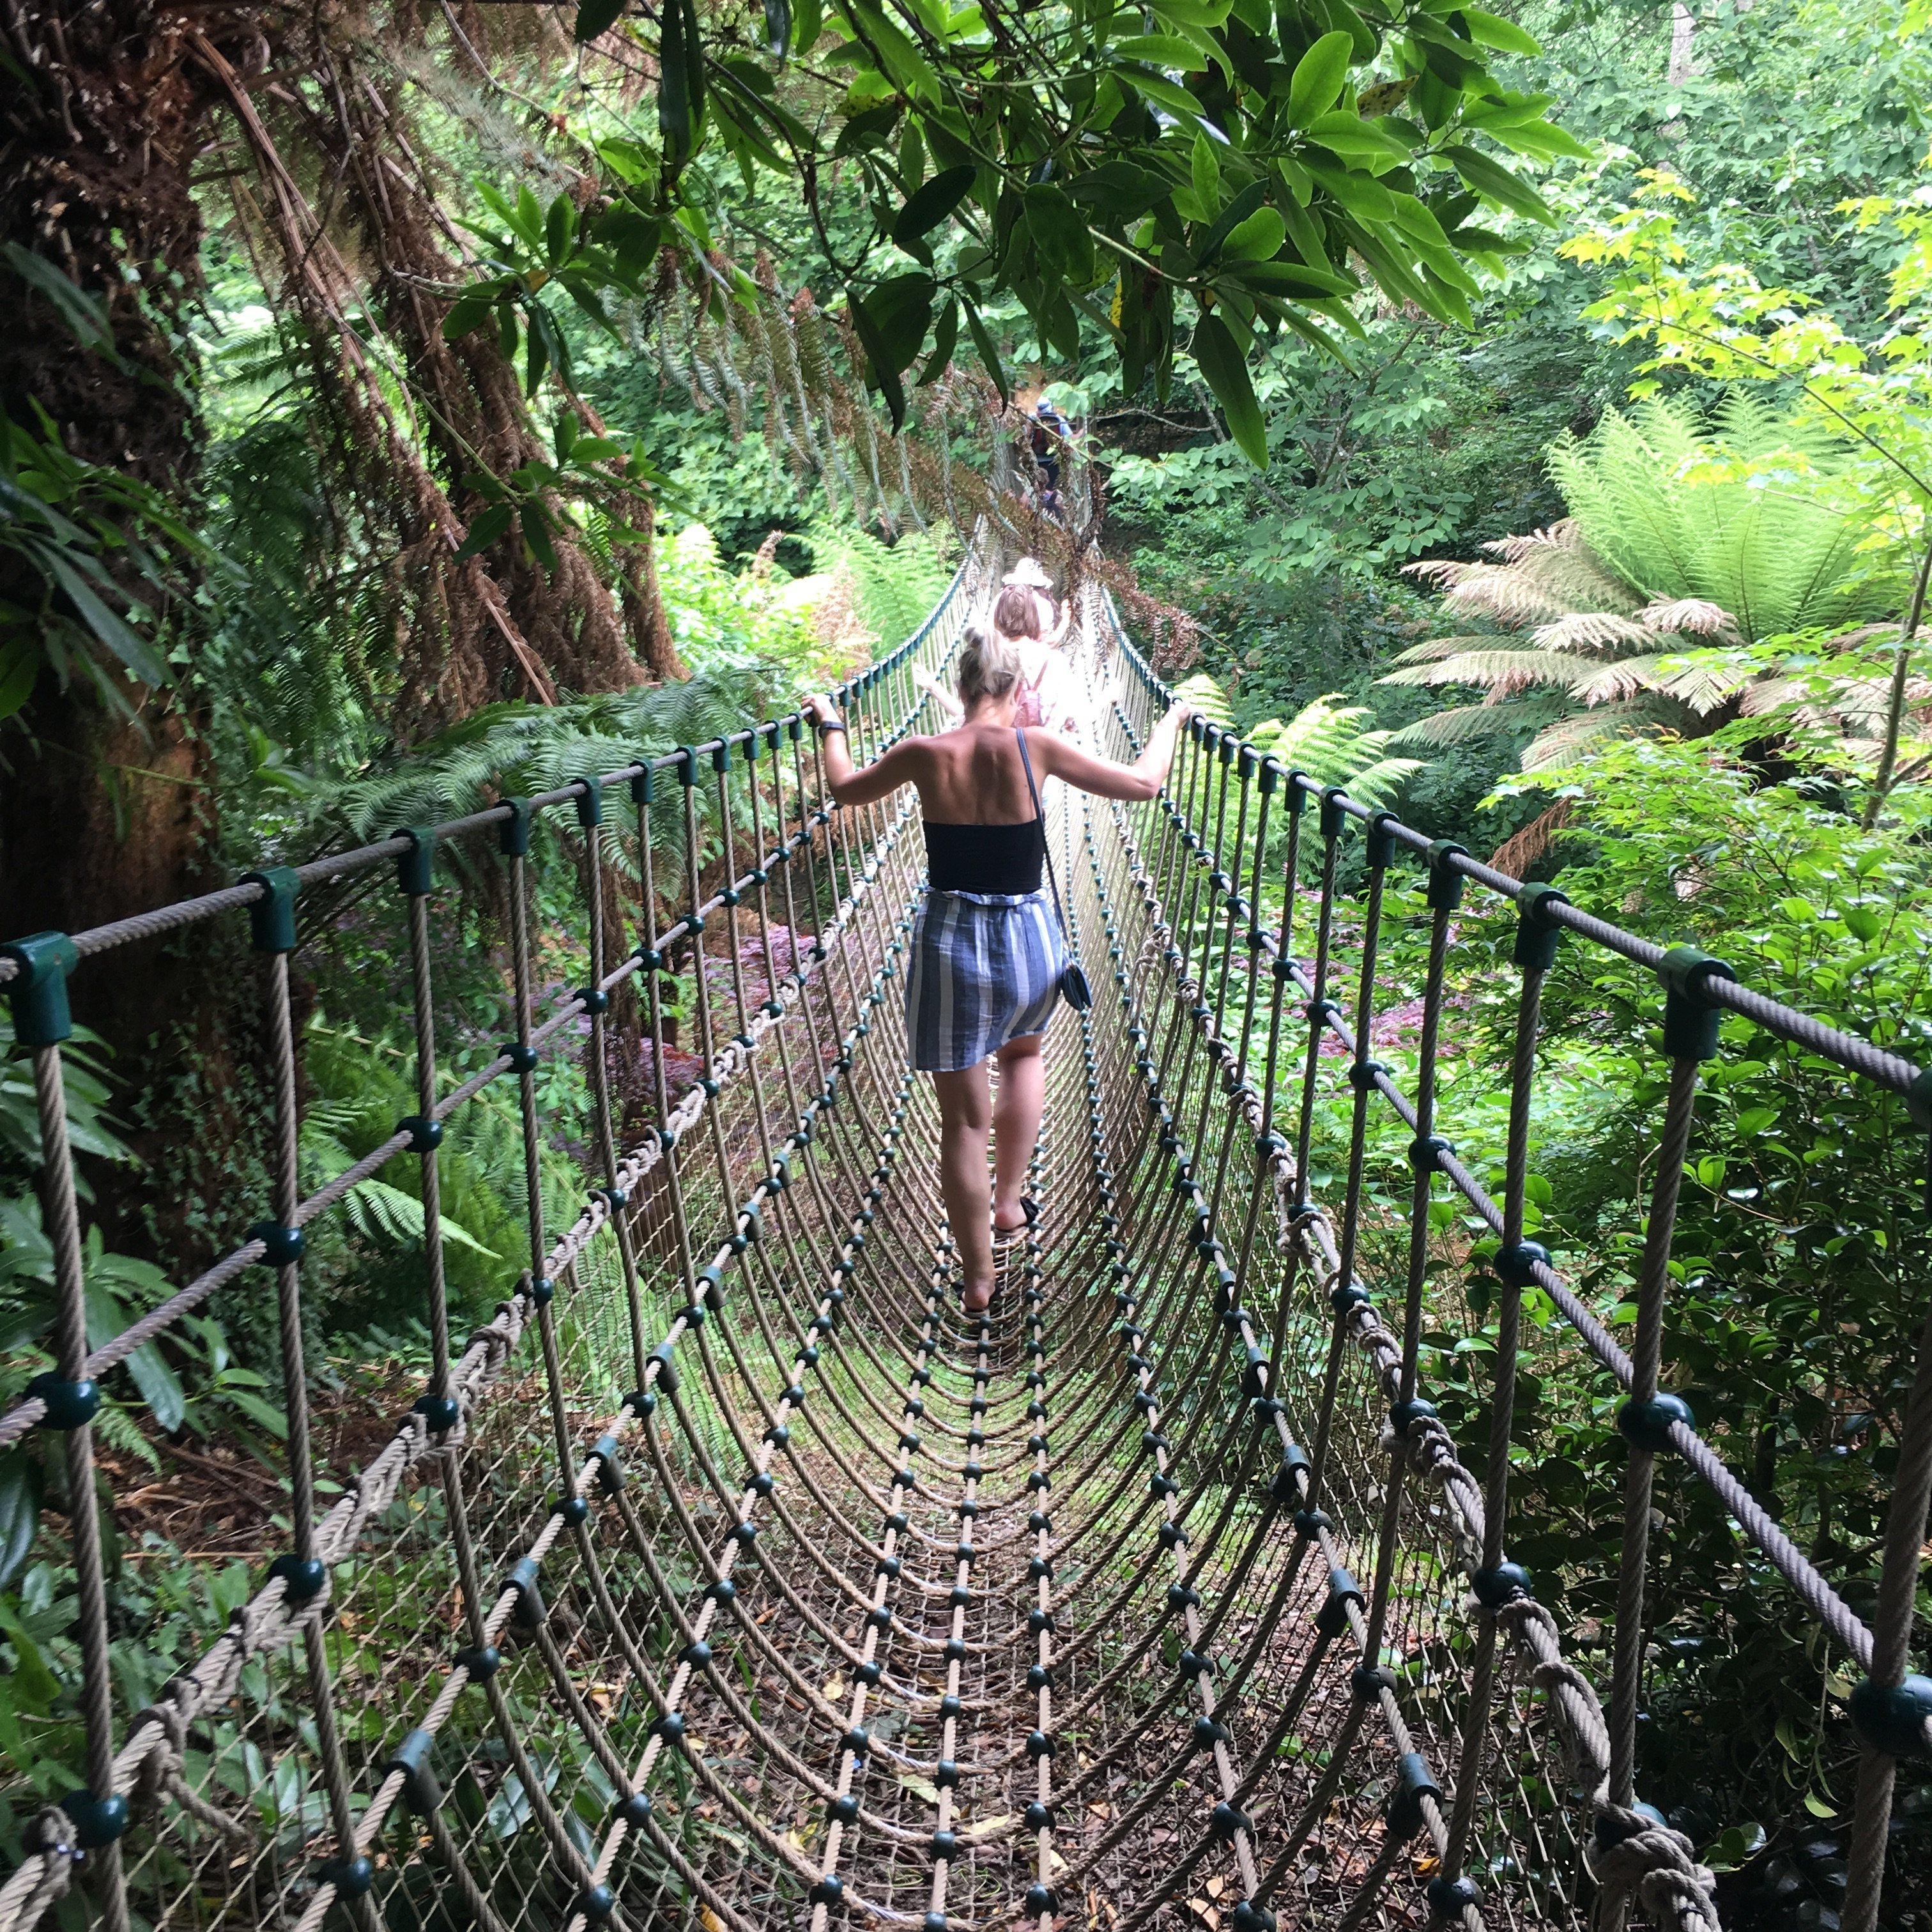 Sam crossing a rope bridge outside